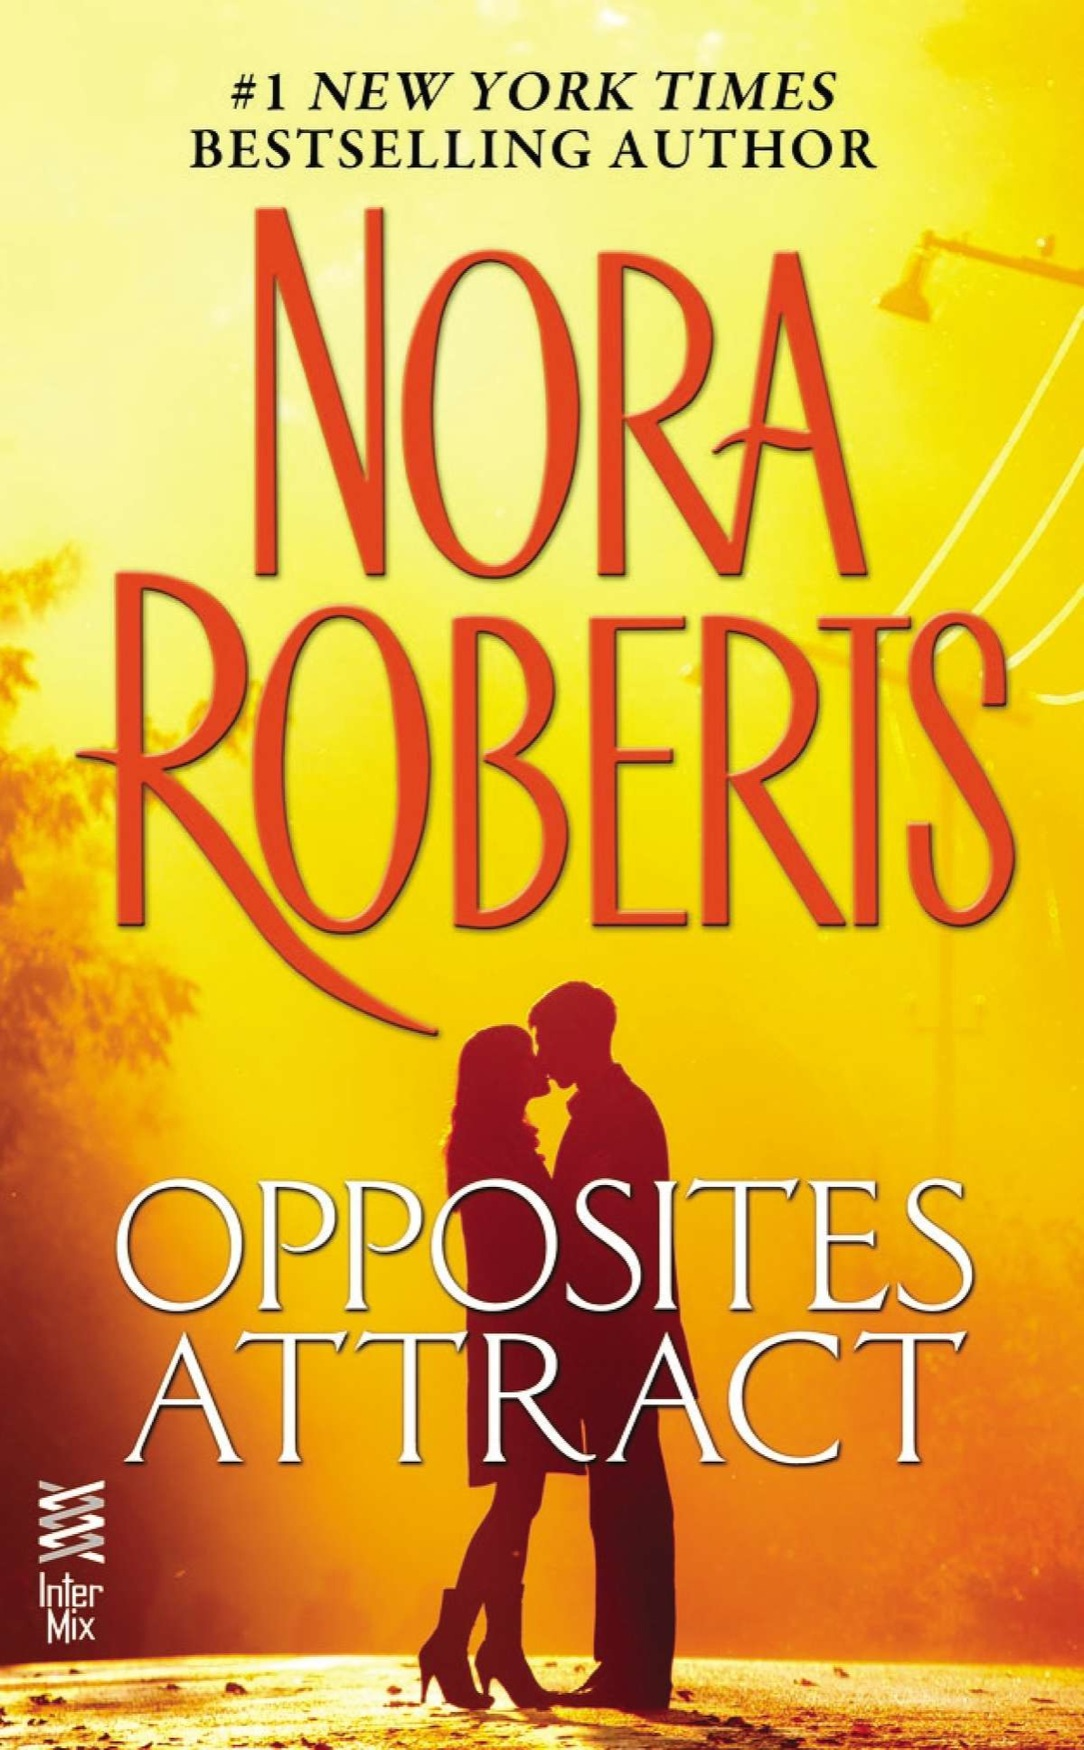 Opposites Attract (2012) by Nora Roberts